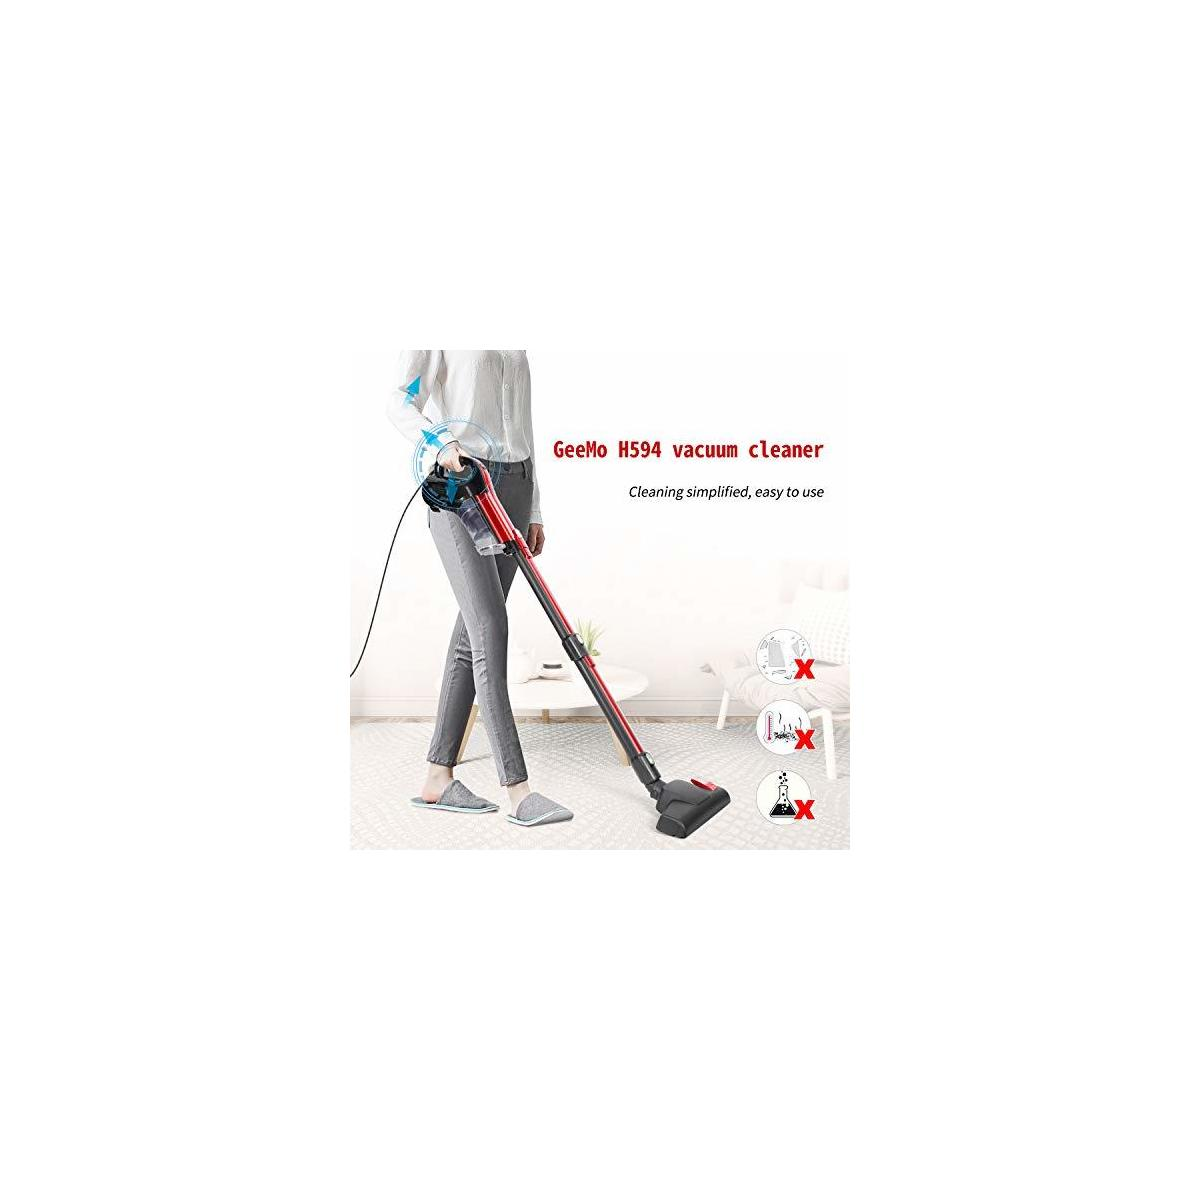 GeeMo Vacuum Cleaner 17Kpa Powerful Cleaning Lightweight and Corded with HEPA Filtration for Hard Floor H594